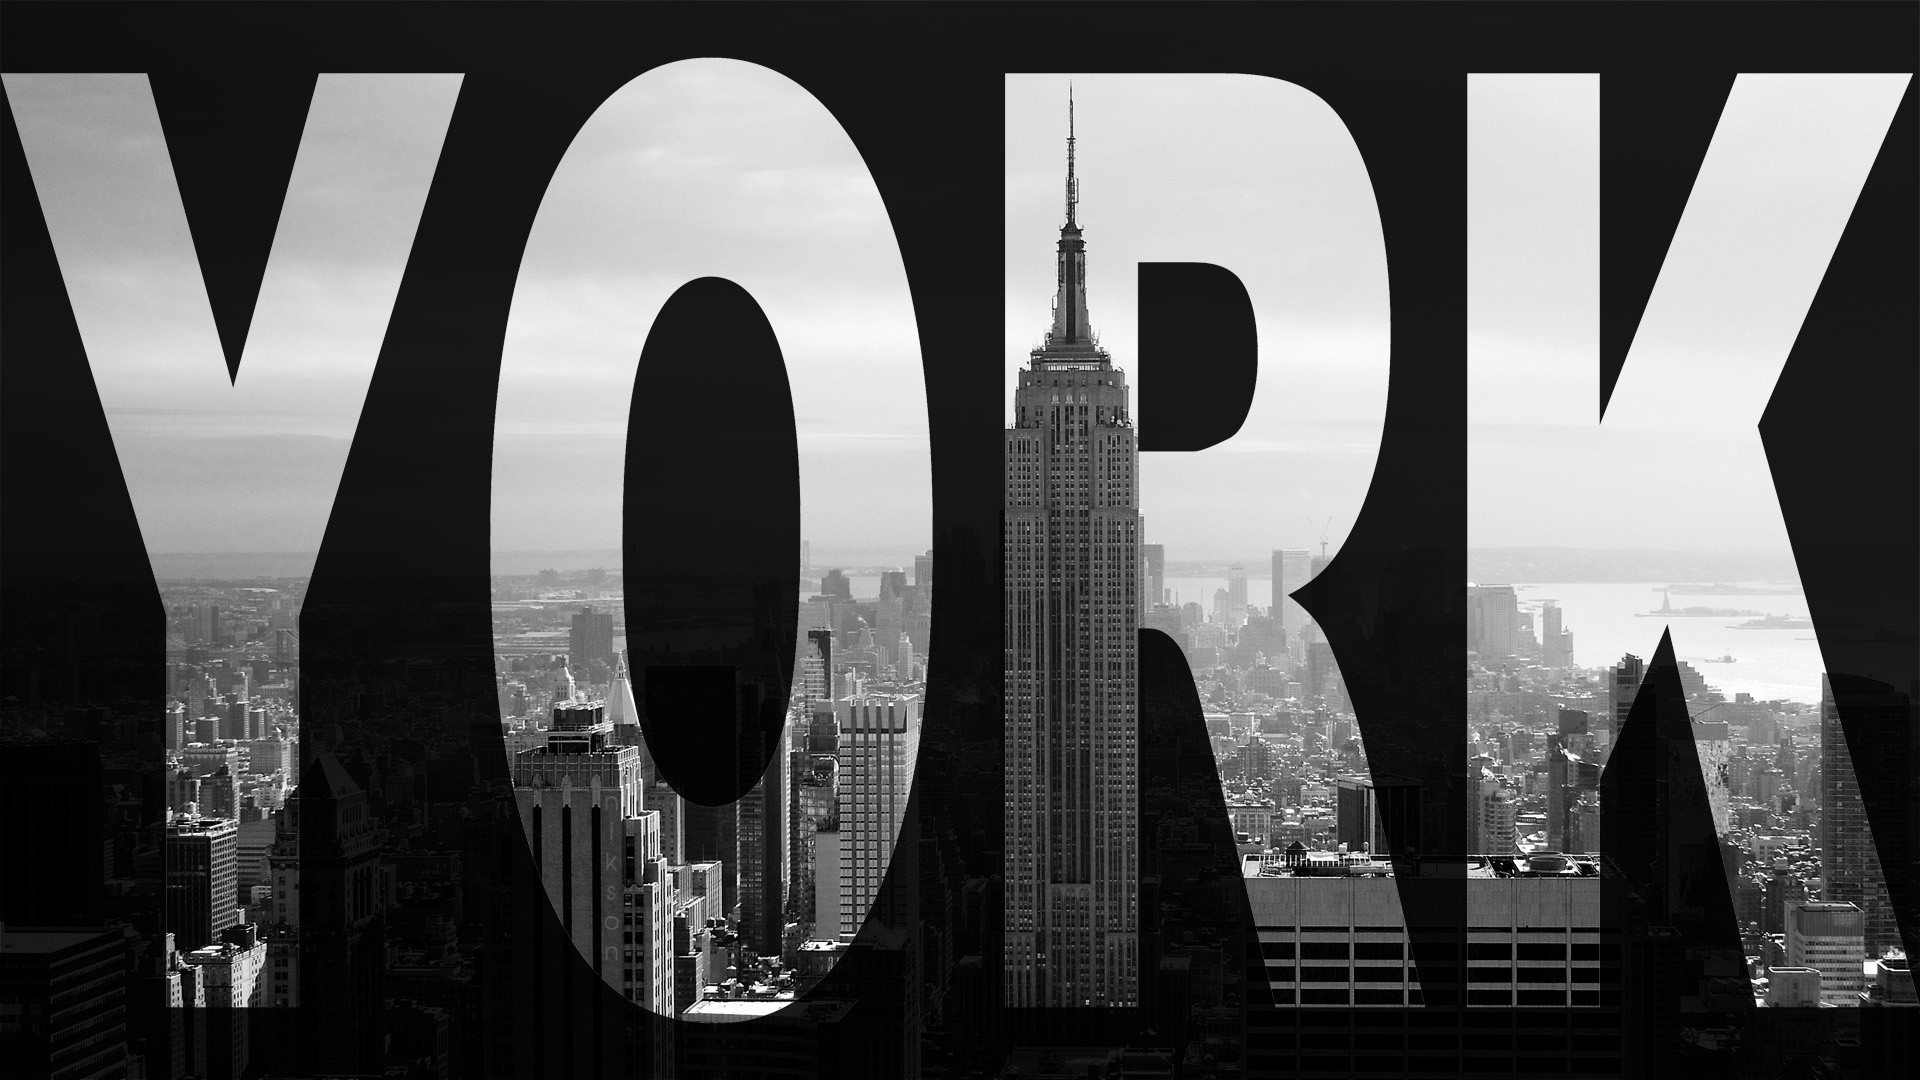 York Wallpaper ·① Download Free Awesome Full HD